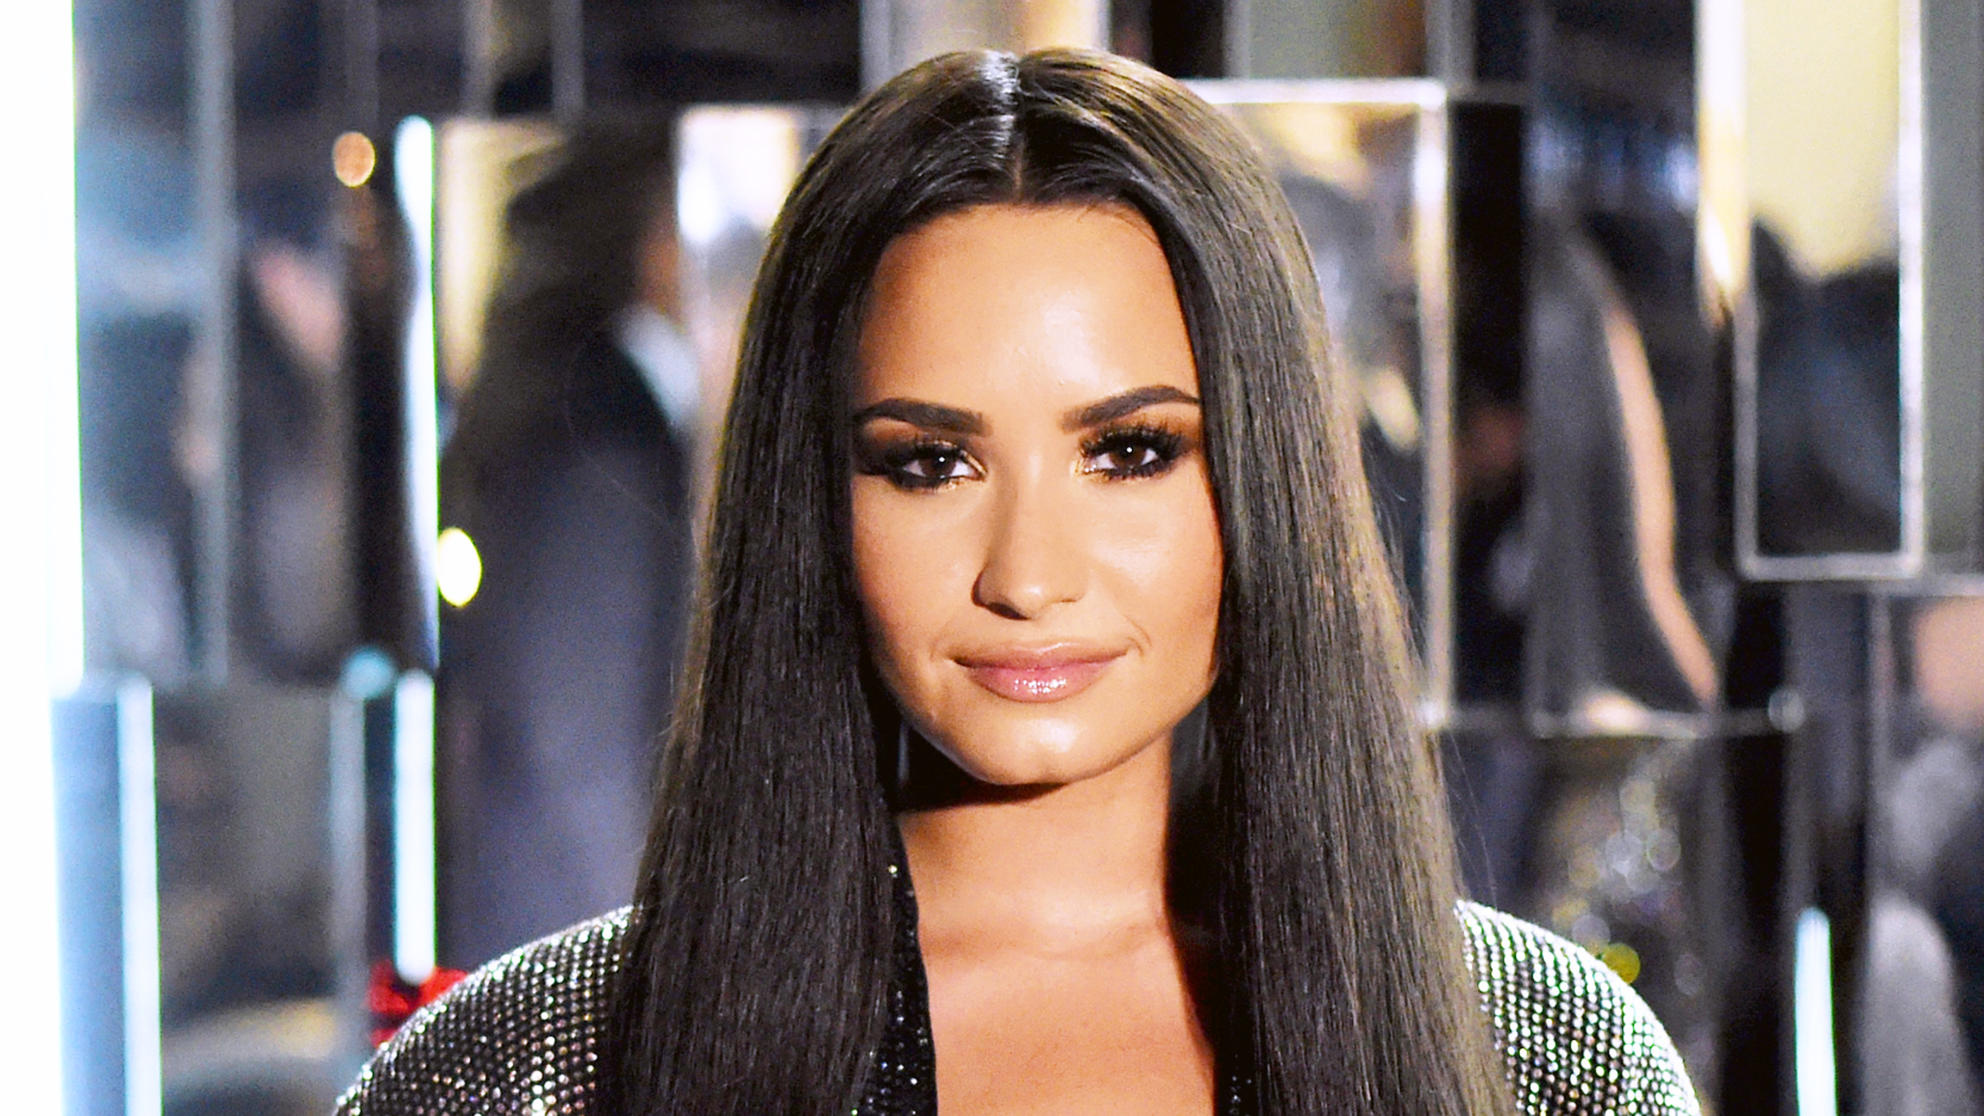 Demi Lovato Just Chopped Off All Her Hair